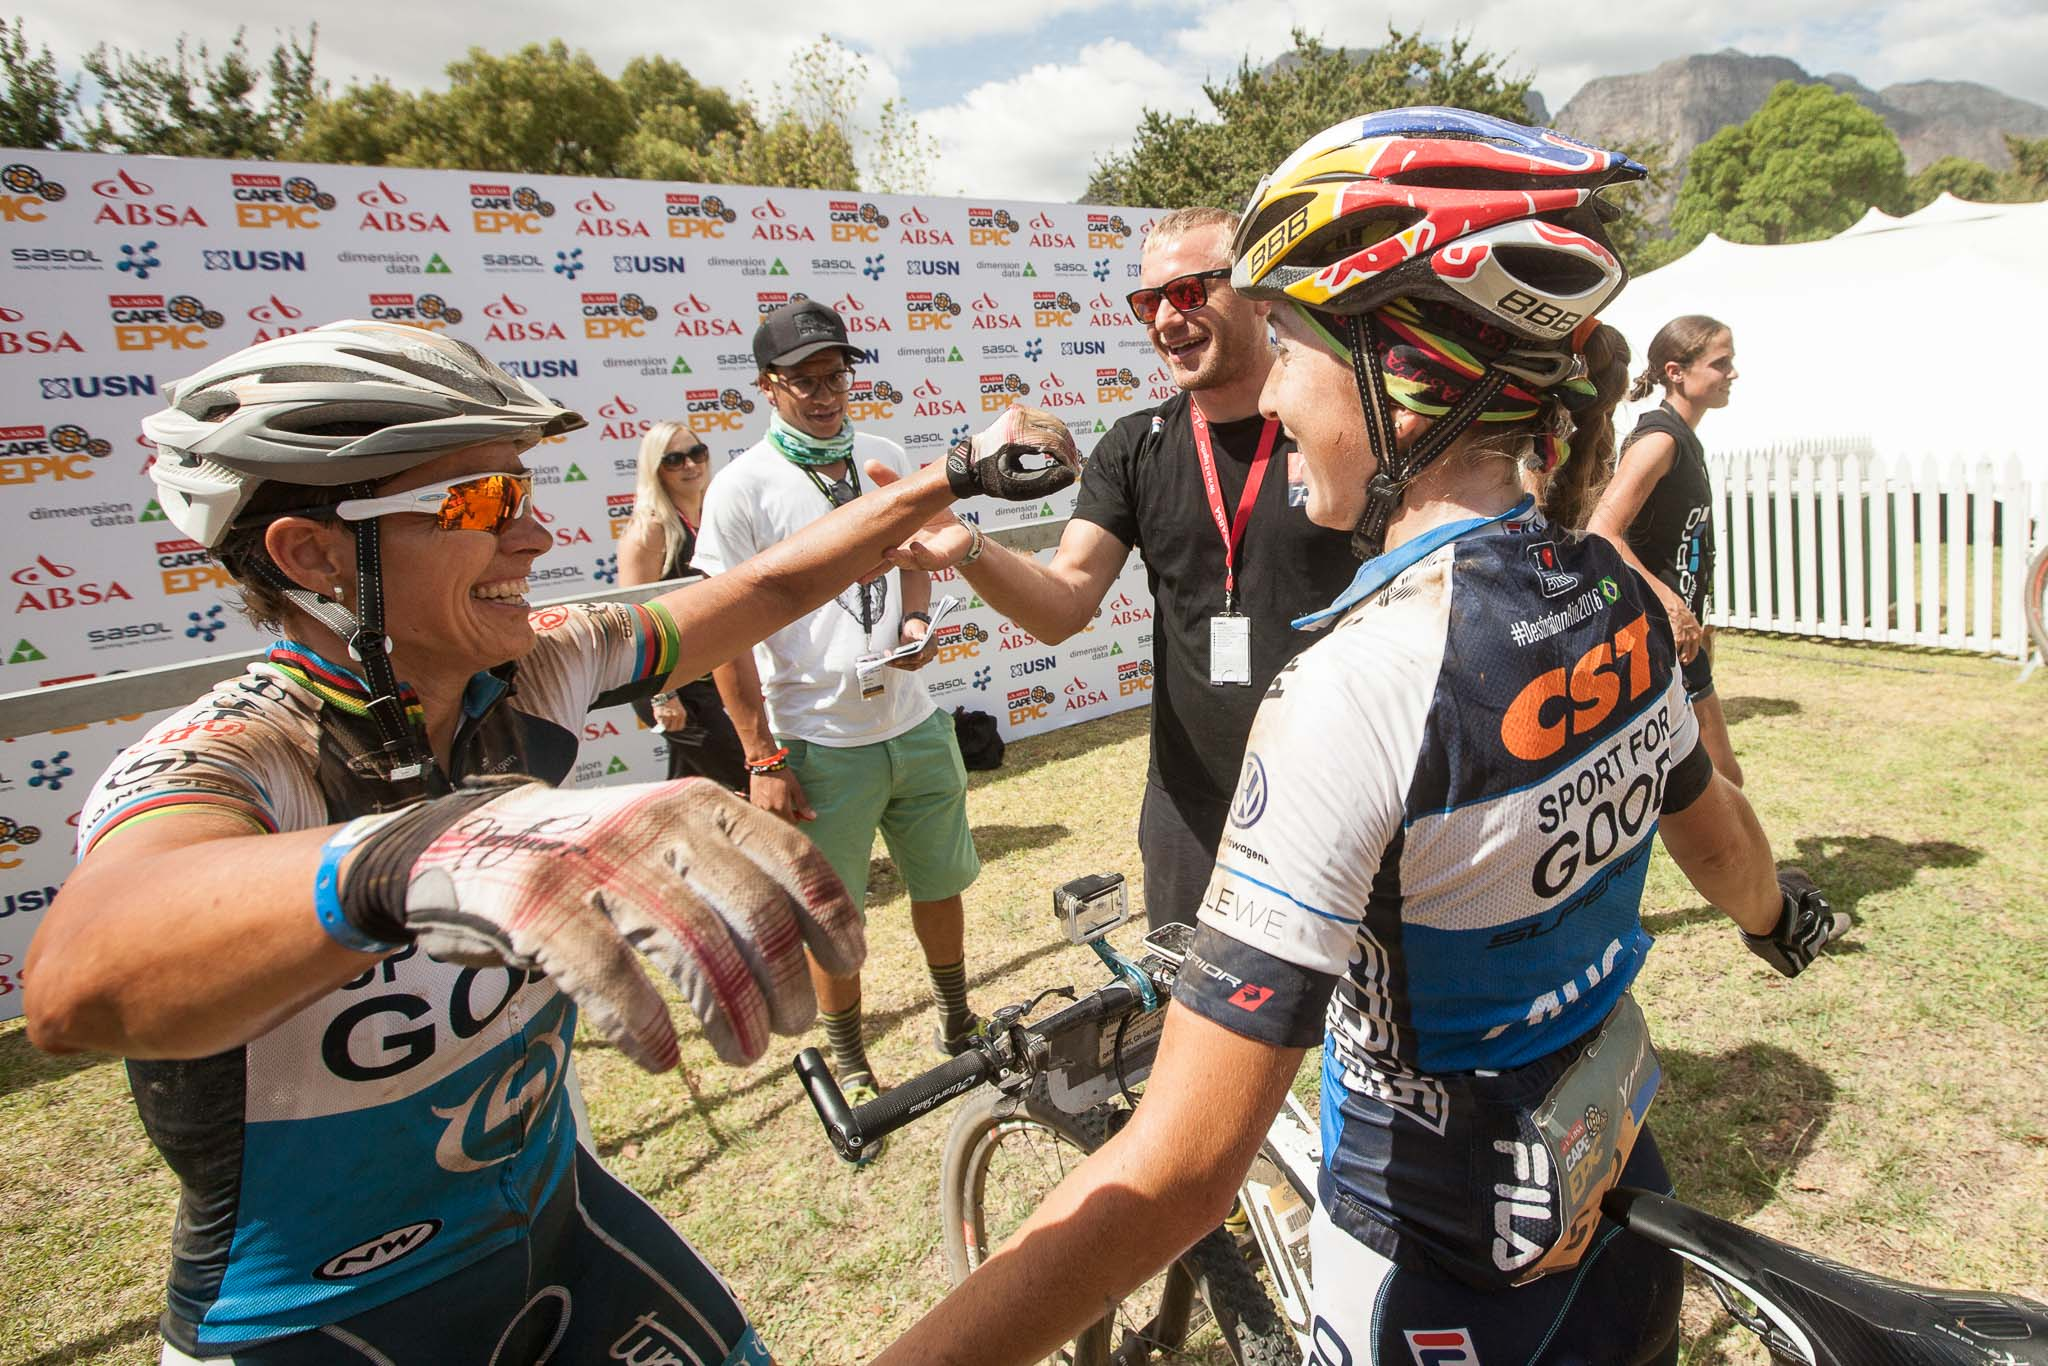 Sabine Spitz and Yana Belomoina win stage 5 of the 2016 Absa Cape Epic Mountain Bike stage race held from the Cape Peninsula University of Technology in Wellington to Boschendal in Stellenbosch, South Africa on the 18th March 2016 Photo by Sam Clark/Cape Epic/SPORTZPICS PLEASE ENSURE THE APPROPRIATE CREDIT IS GIVEN TO THE PHOTOGRAPHER AND SPORTZPICS ALONG WITH THE ABSA CAPE EPIC ace2016